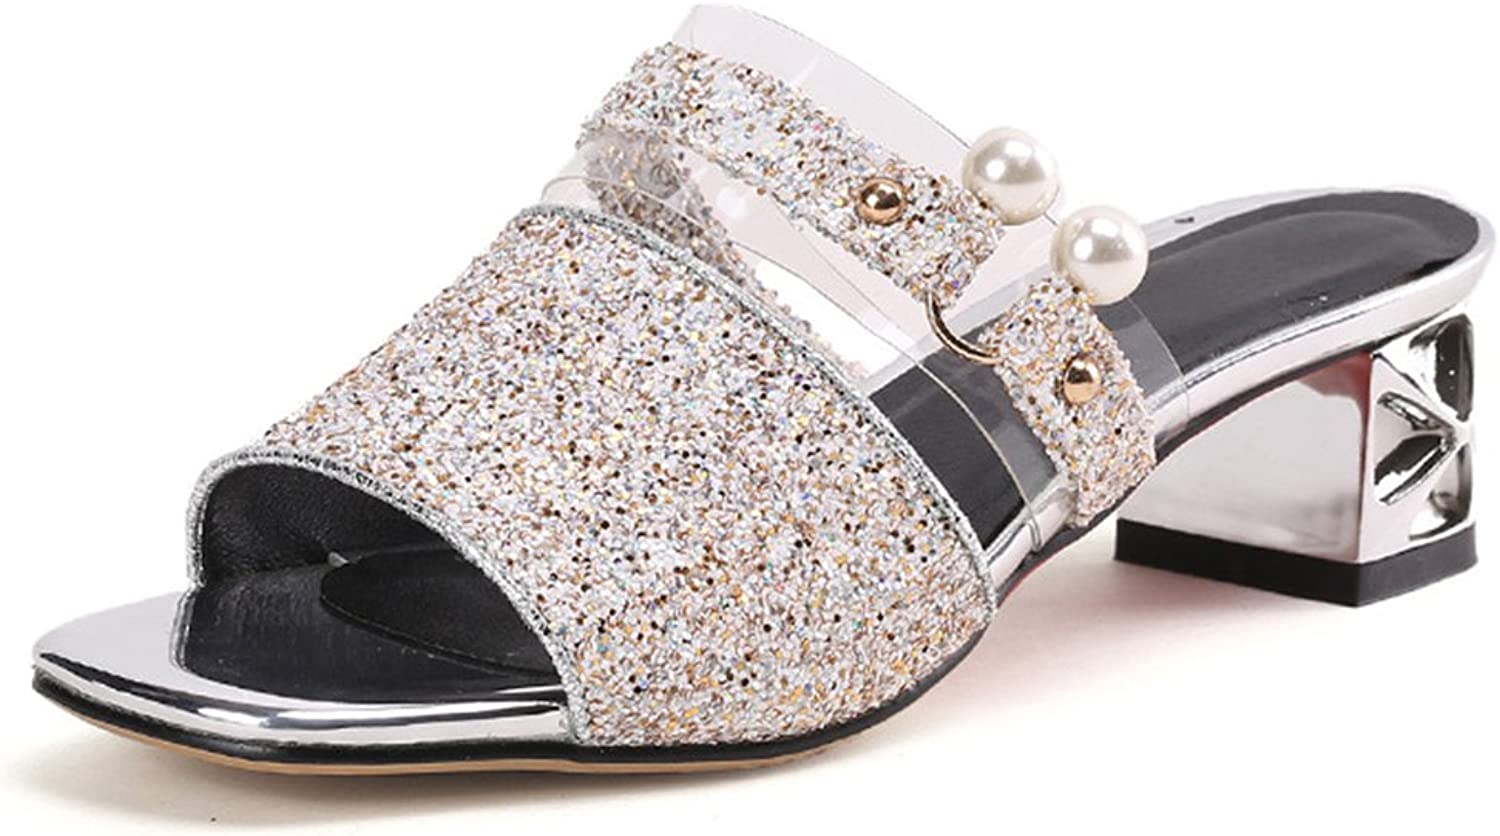 IDIFU Women's Sparkly Sequins Mid Chunky Heeled Open Toe Mule Sandals for Party